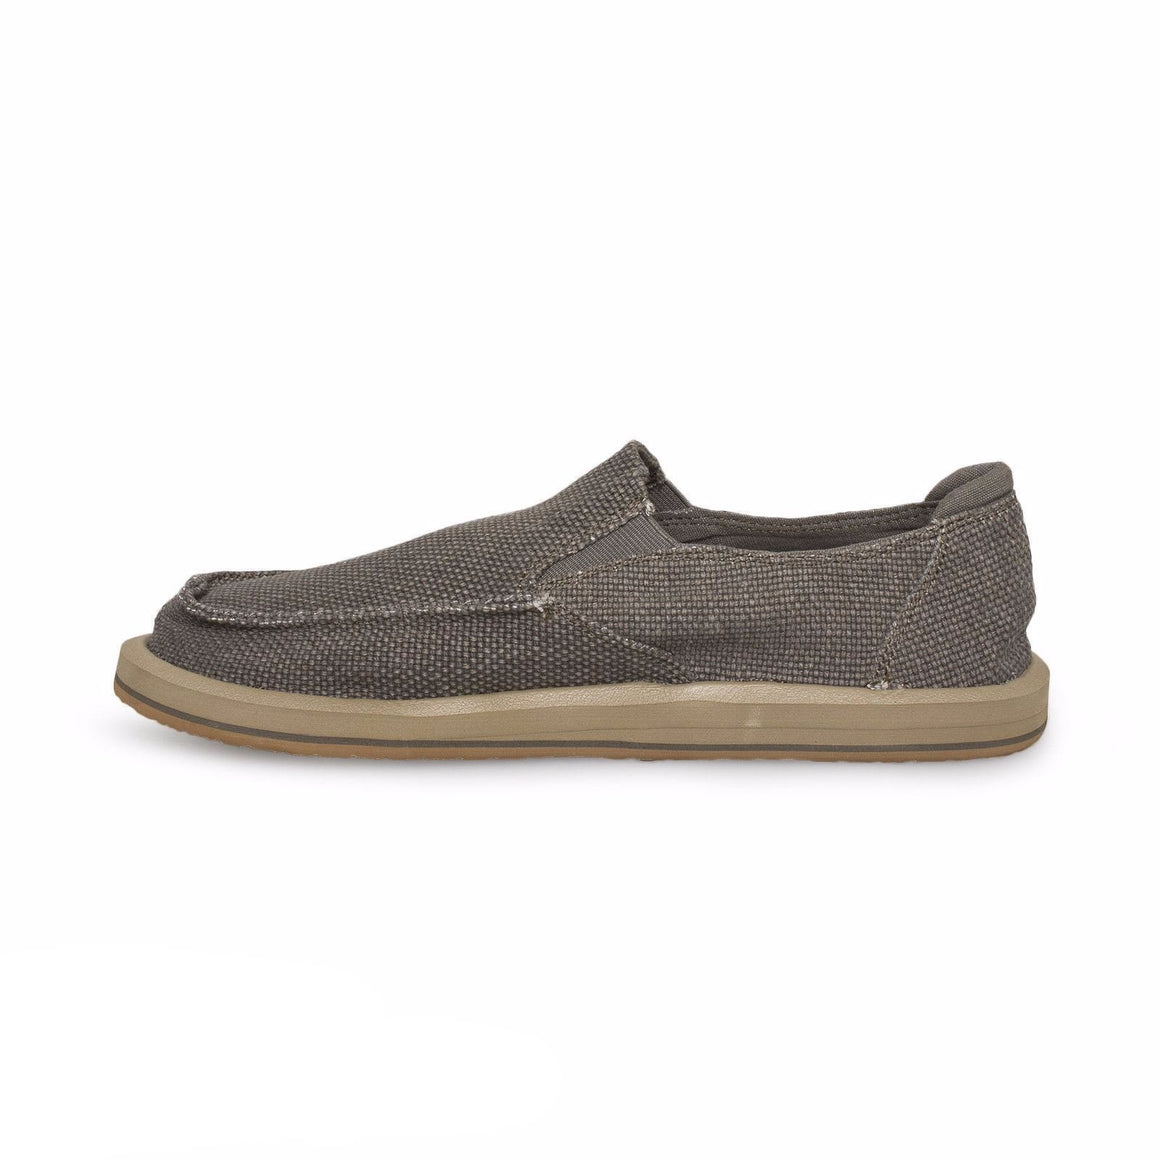 Sanuk Vagabonded Brindle Shoes